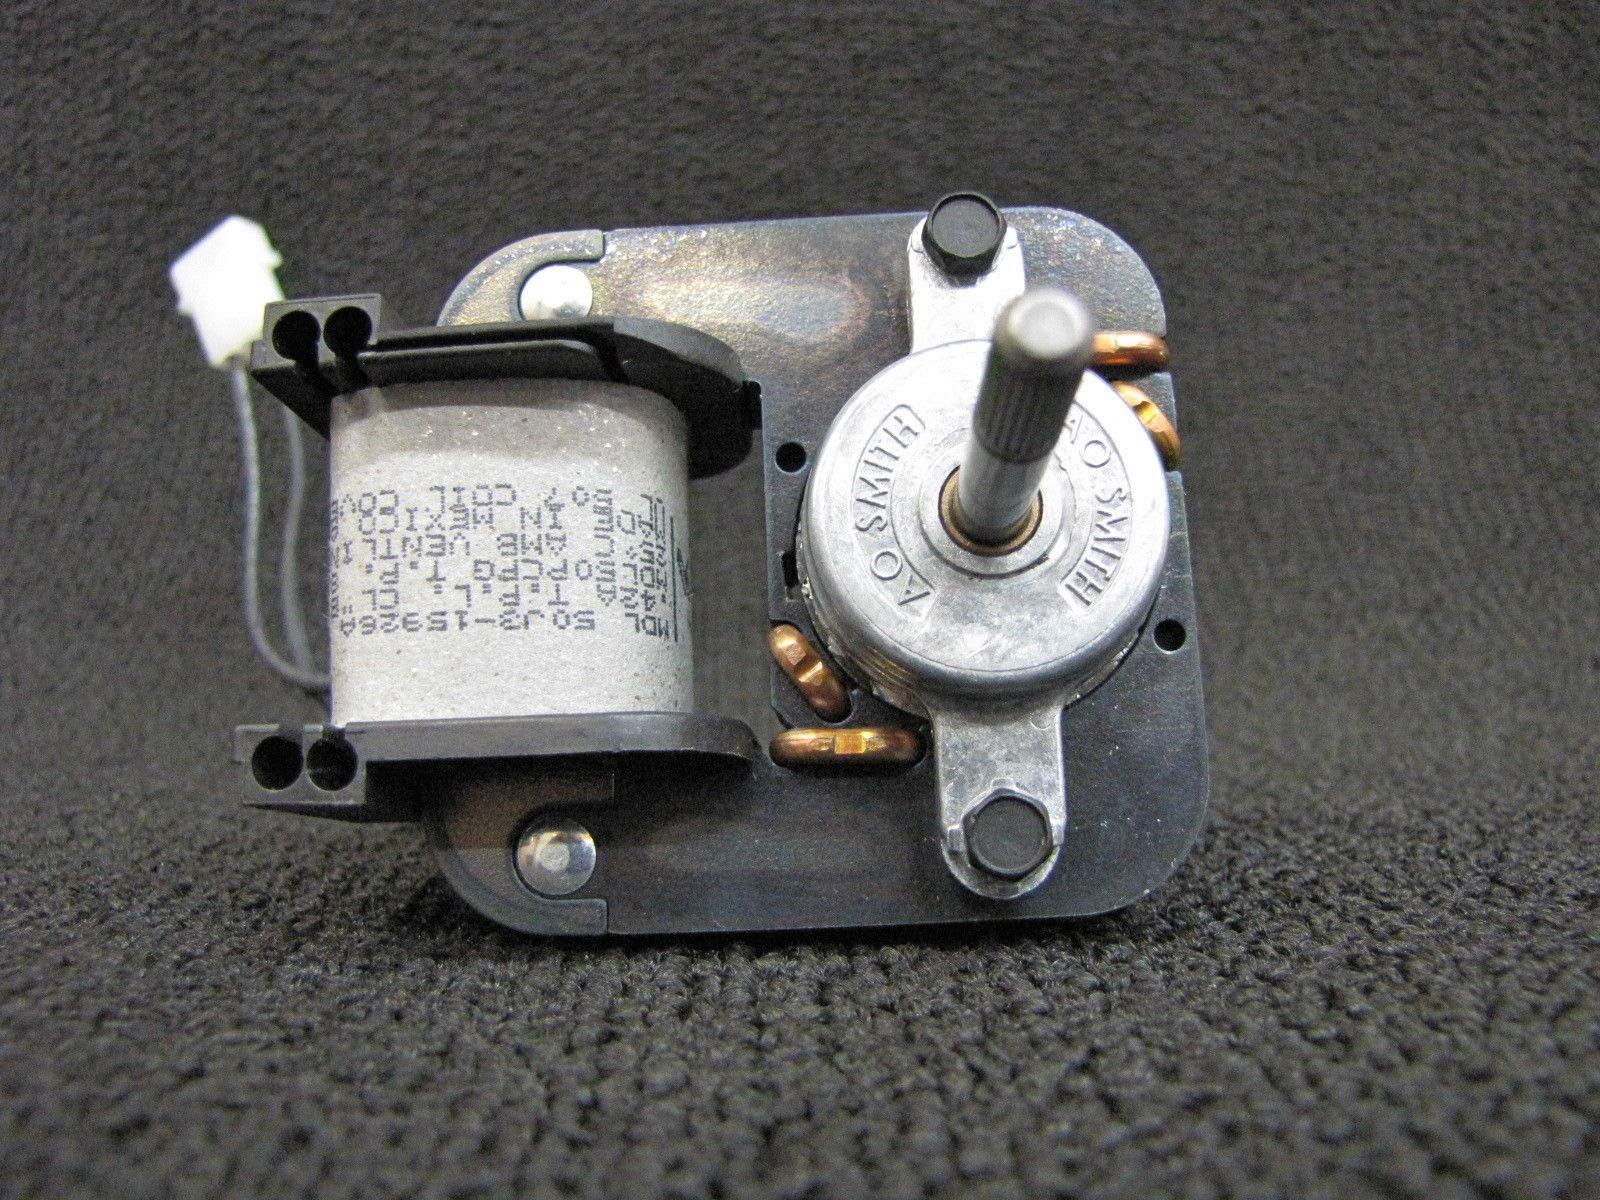 FidgetKute Mobile Home Parts Vent Fan Replacement Motor for Bathroom Exhaust BCD0388-00 Show One Size